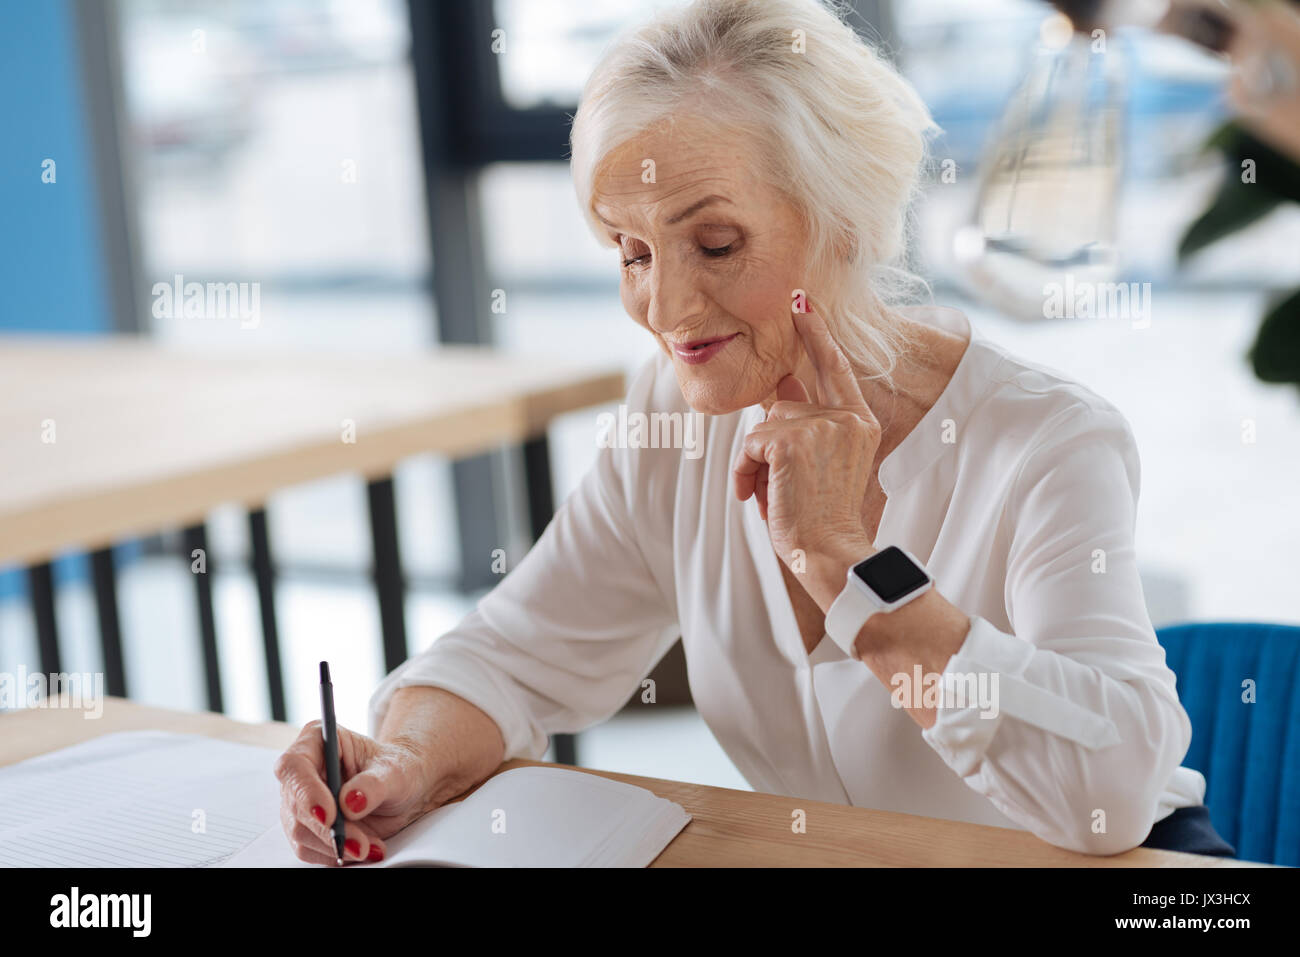 Happy aged woman writing down her memories - Stock Image